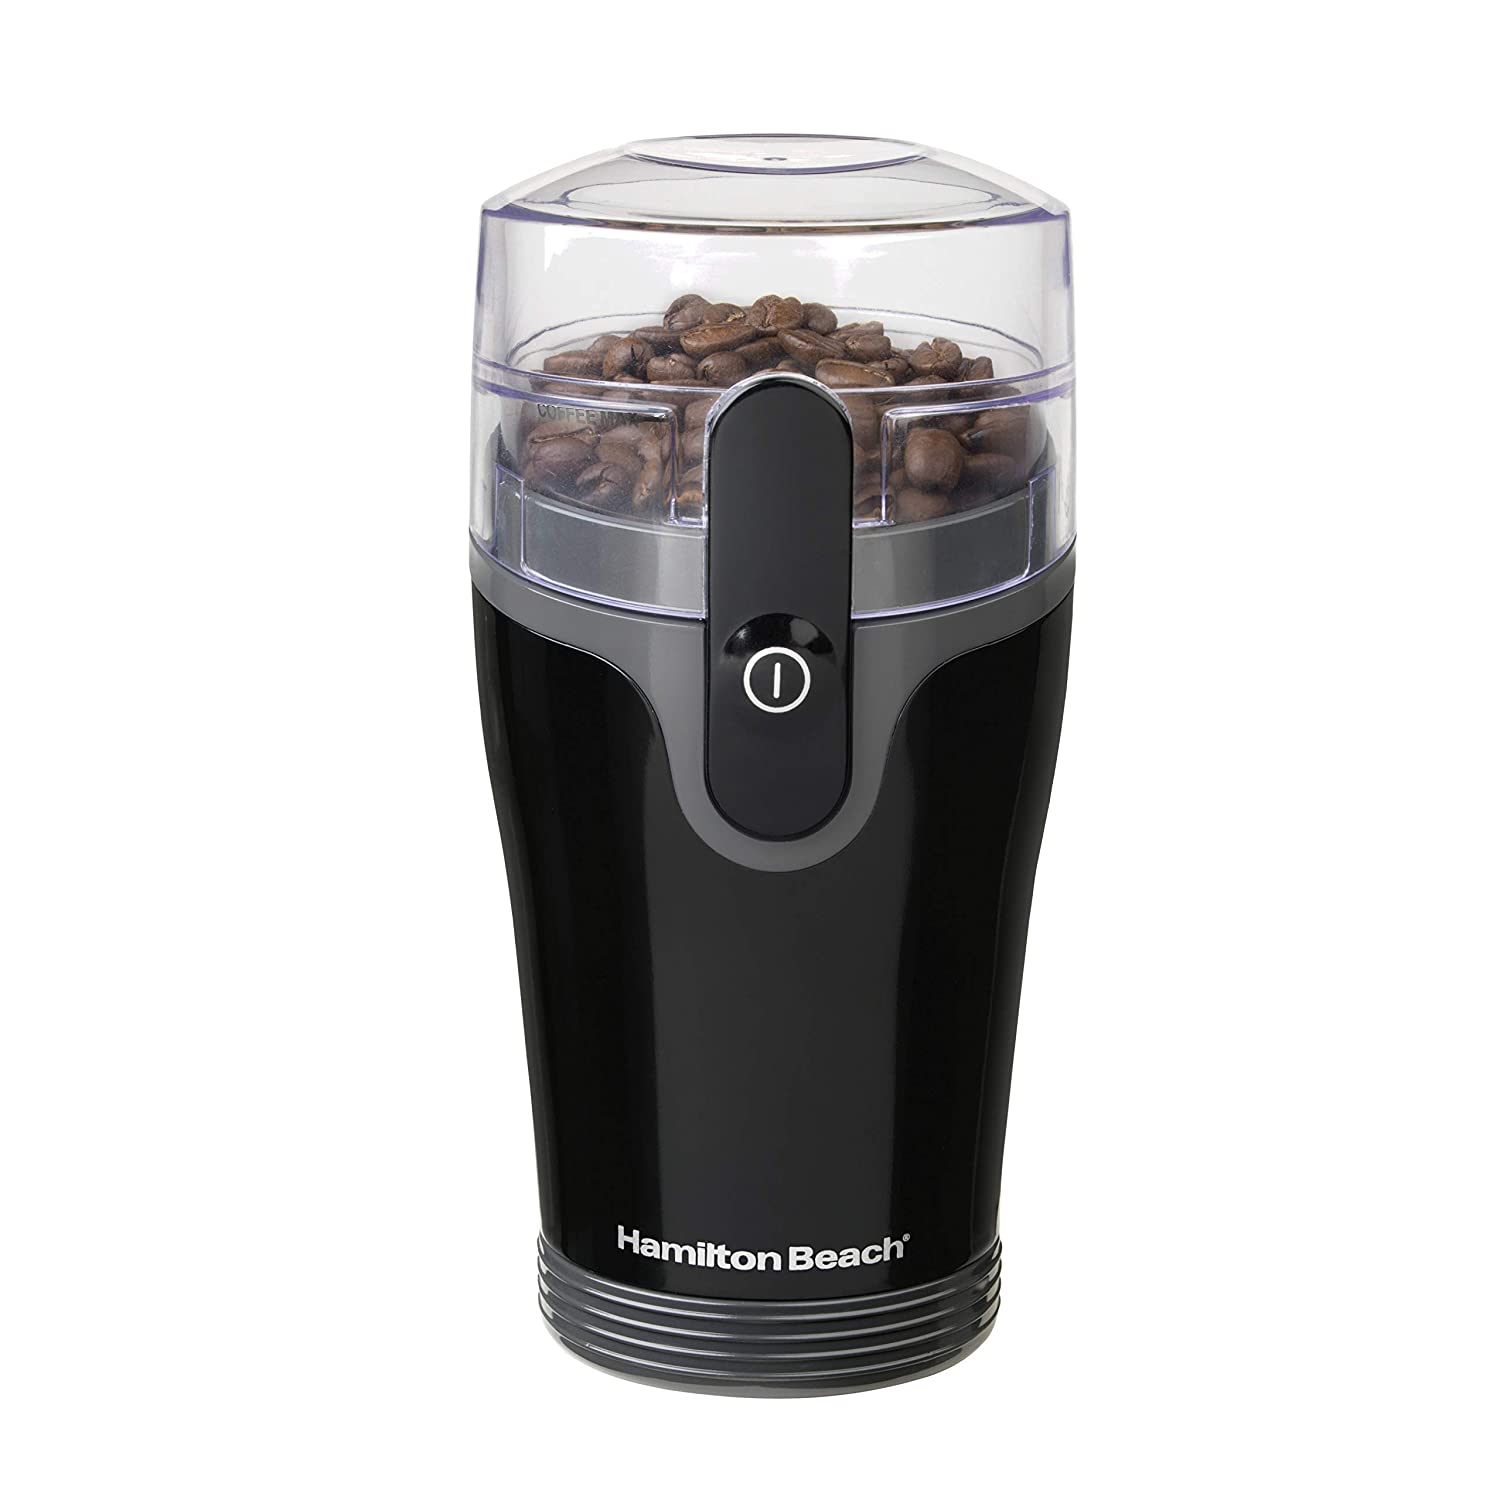 Hamilton Beach Fresh Grind 4.5oz Electric Coffee Grinder for Beans, Spices and More, Stainless Steel Blades, Black 80335R